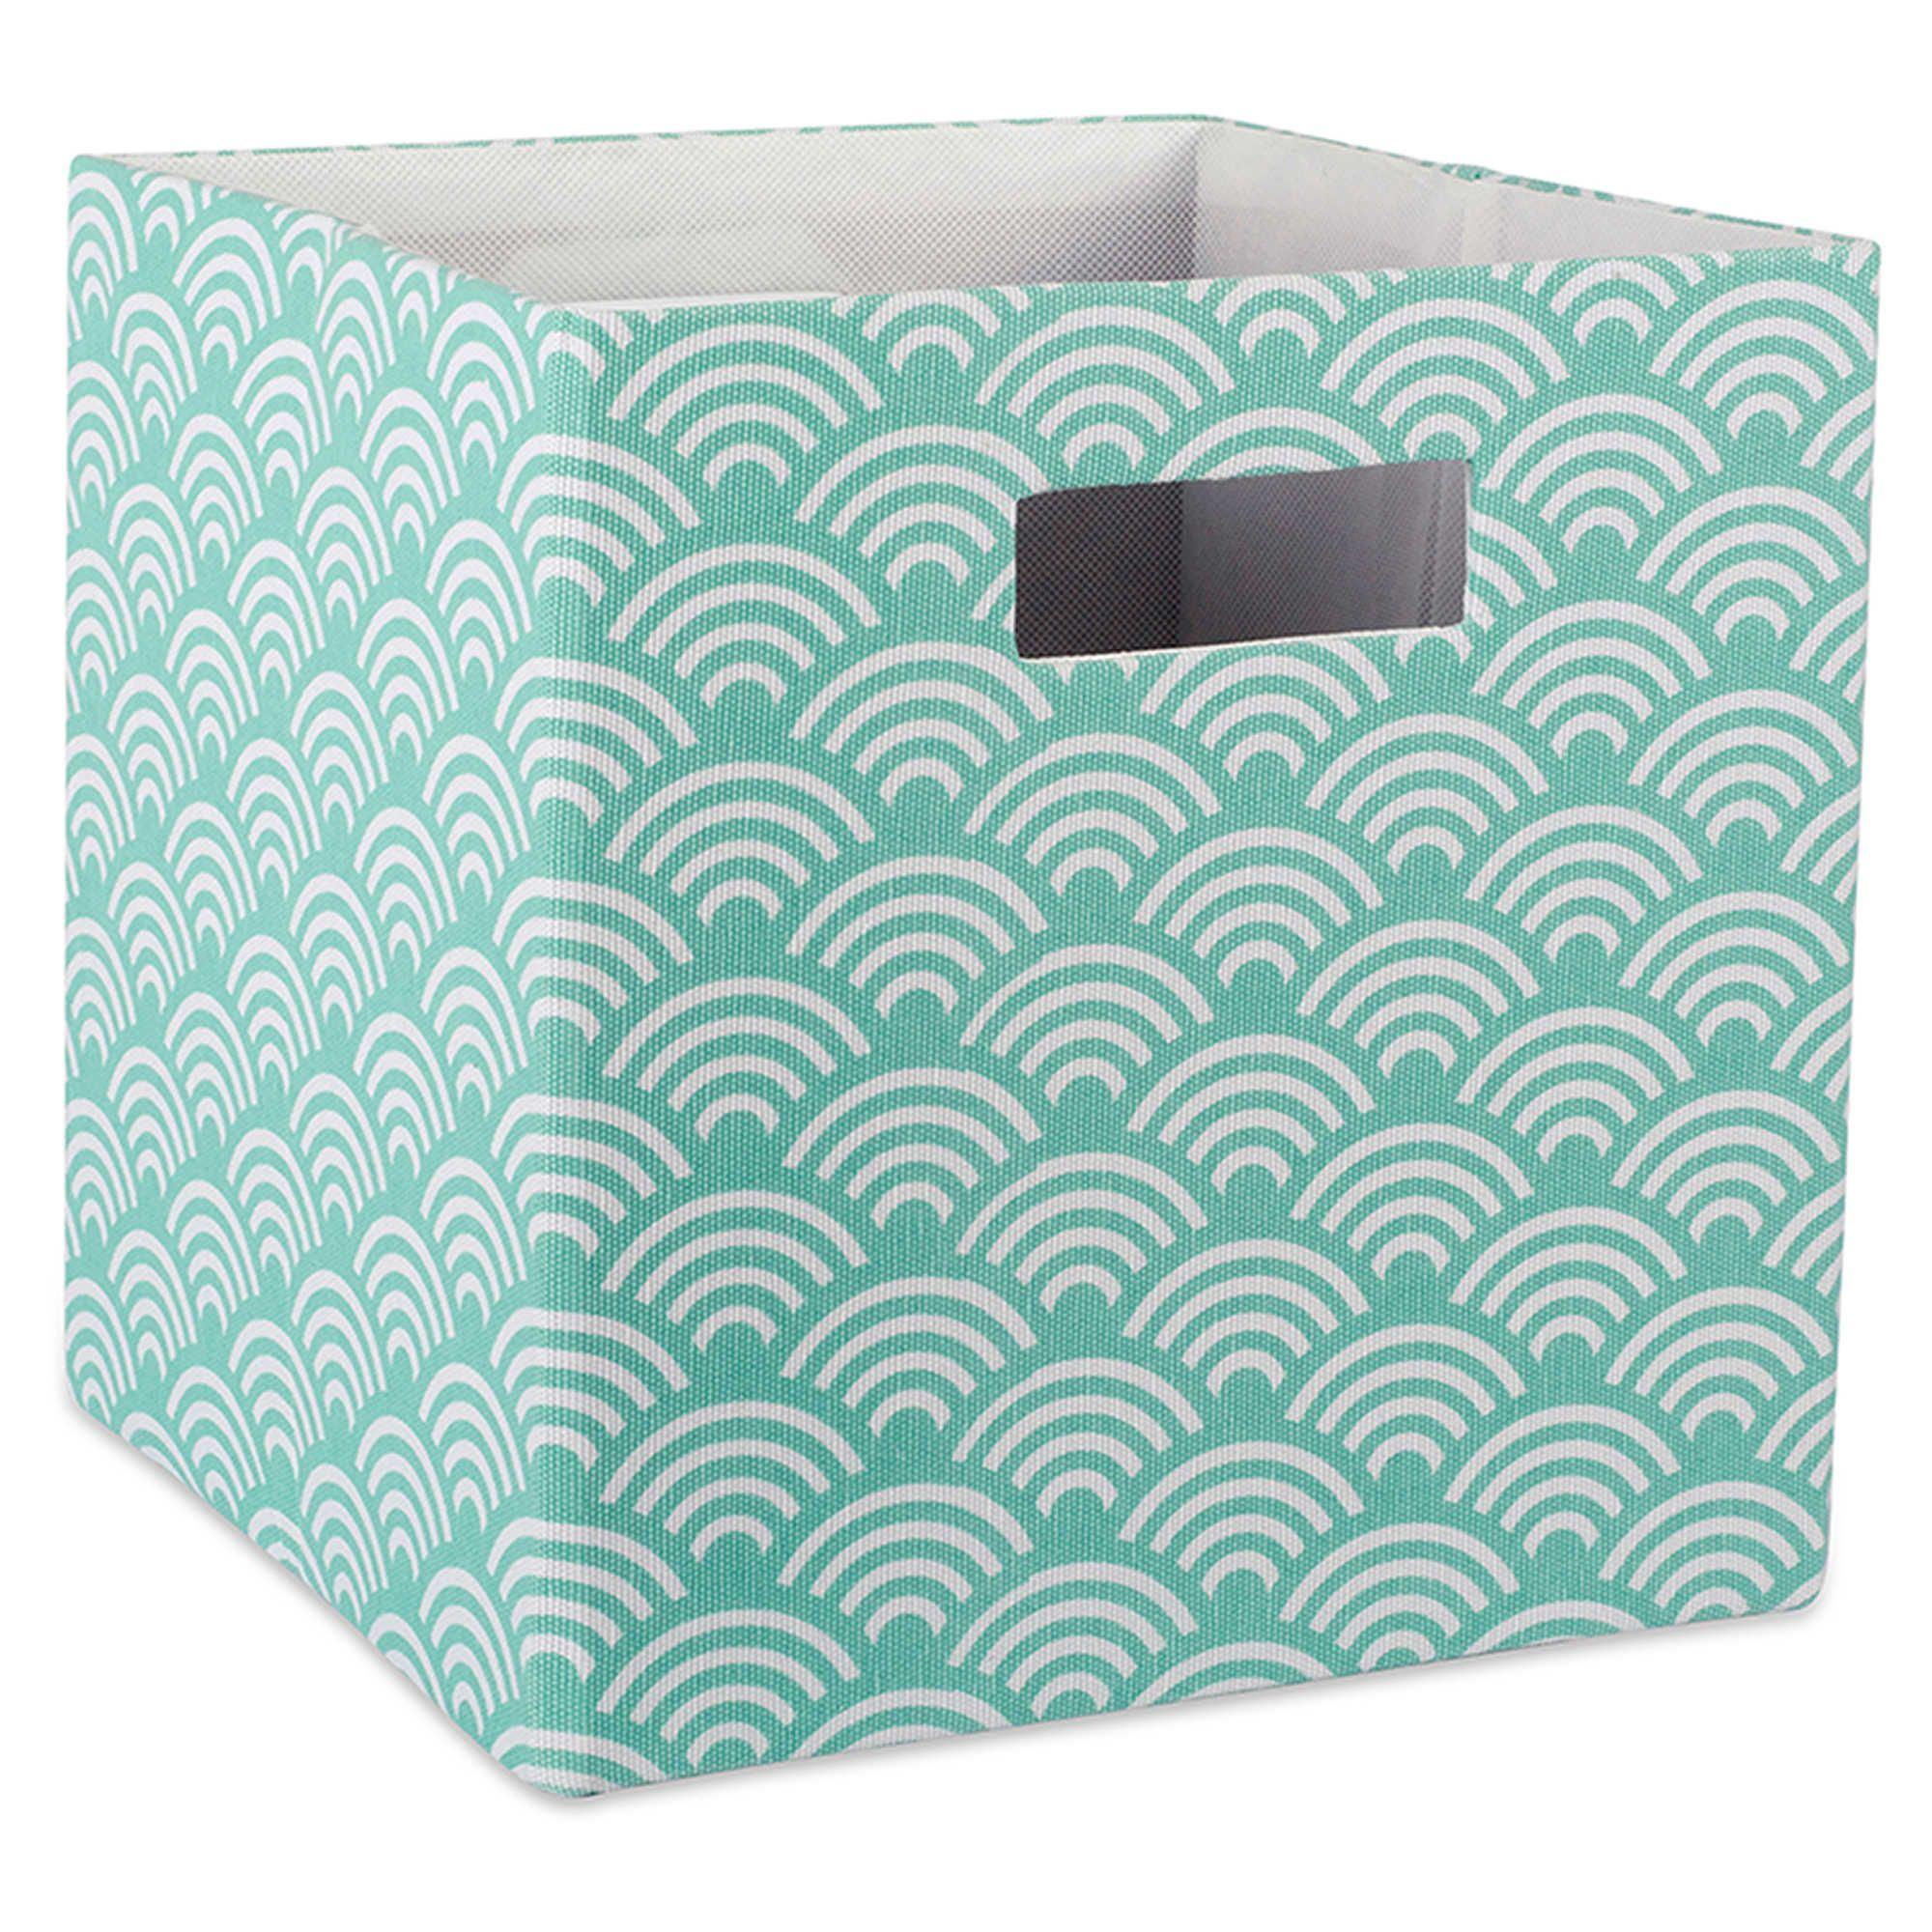 Design Imports Wave 11 Inch Storage Cube In Blue Cube Storage Fabric Storage Design Imports